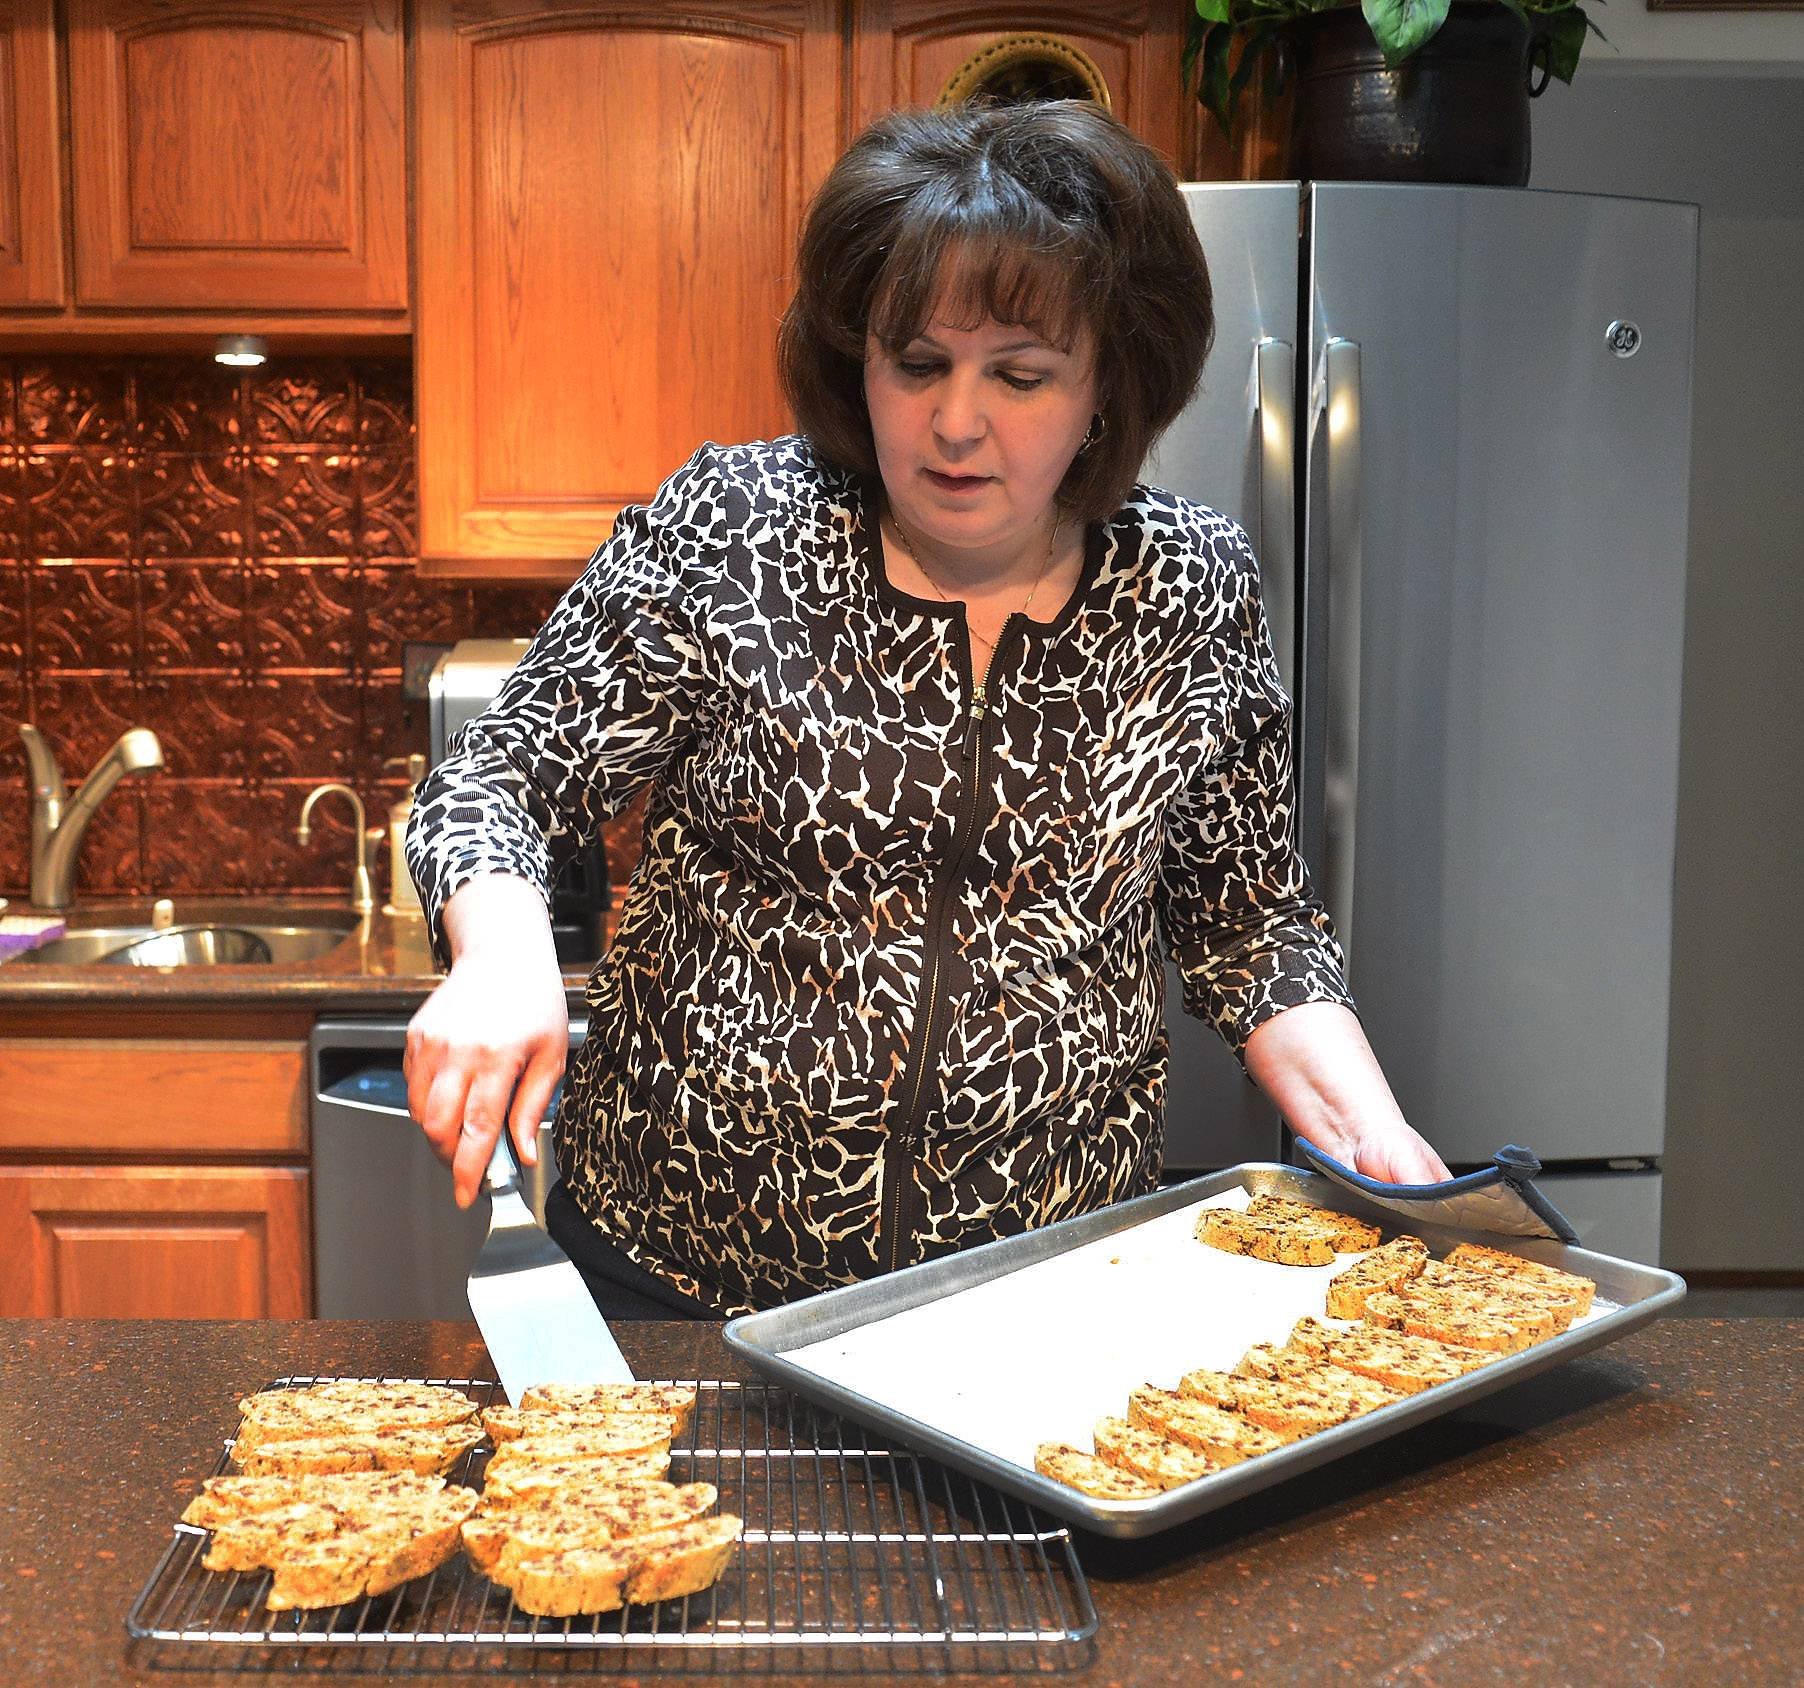 Cook of the Week: Retiree returns to school to perfect culinary skills